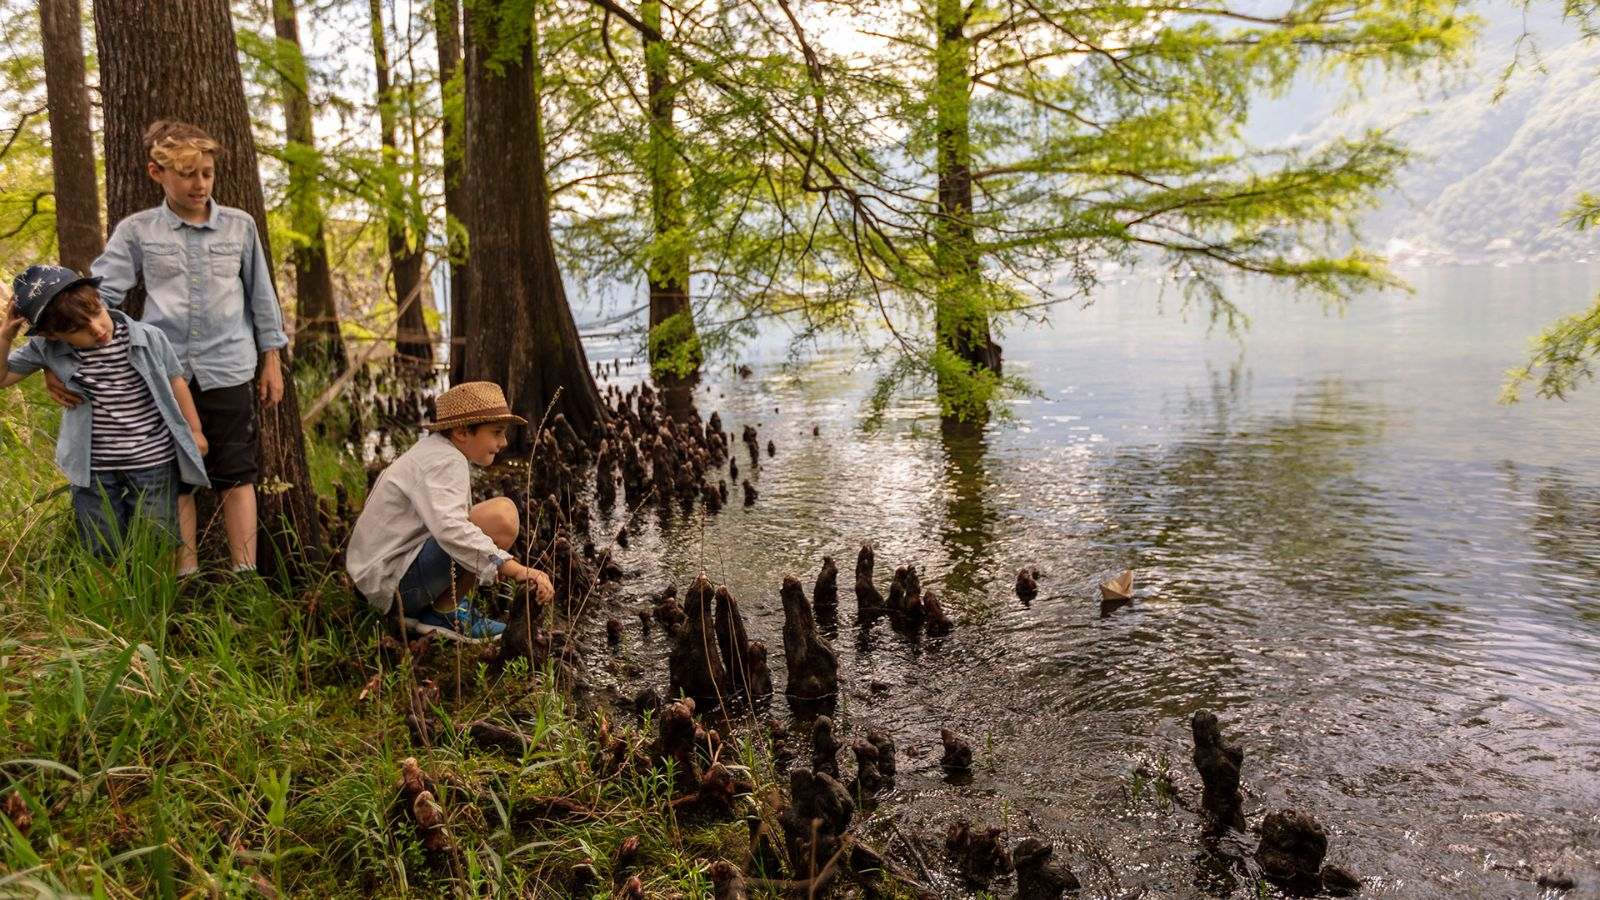 The strange roots of the bald cypress in the water